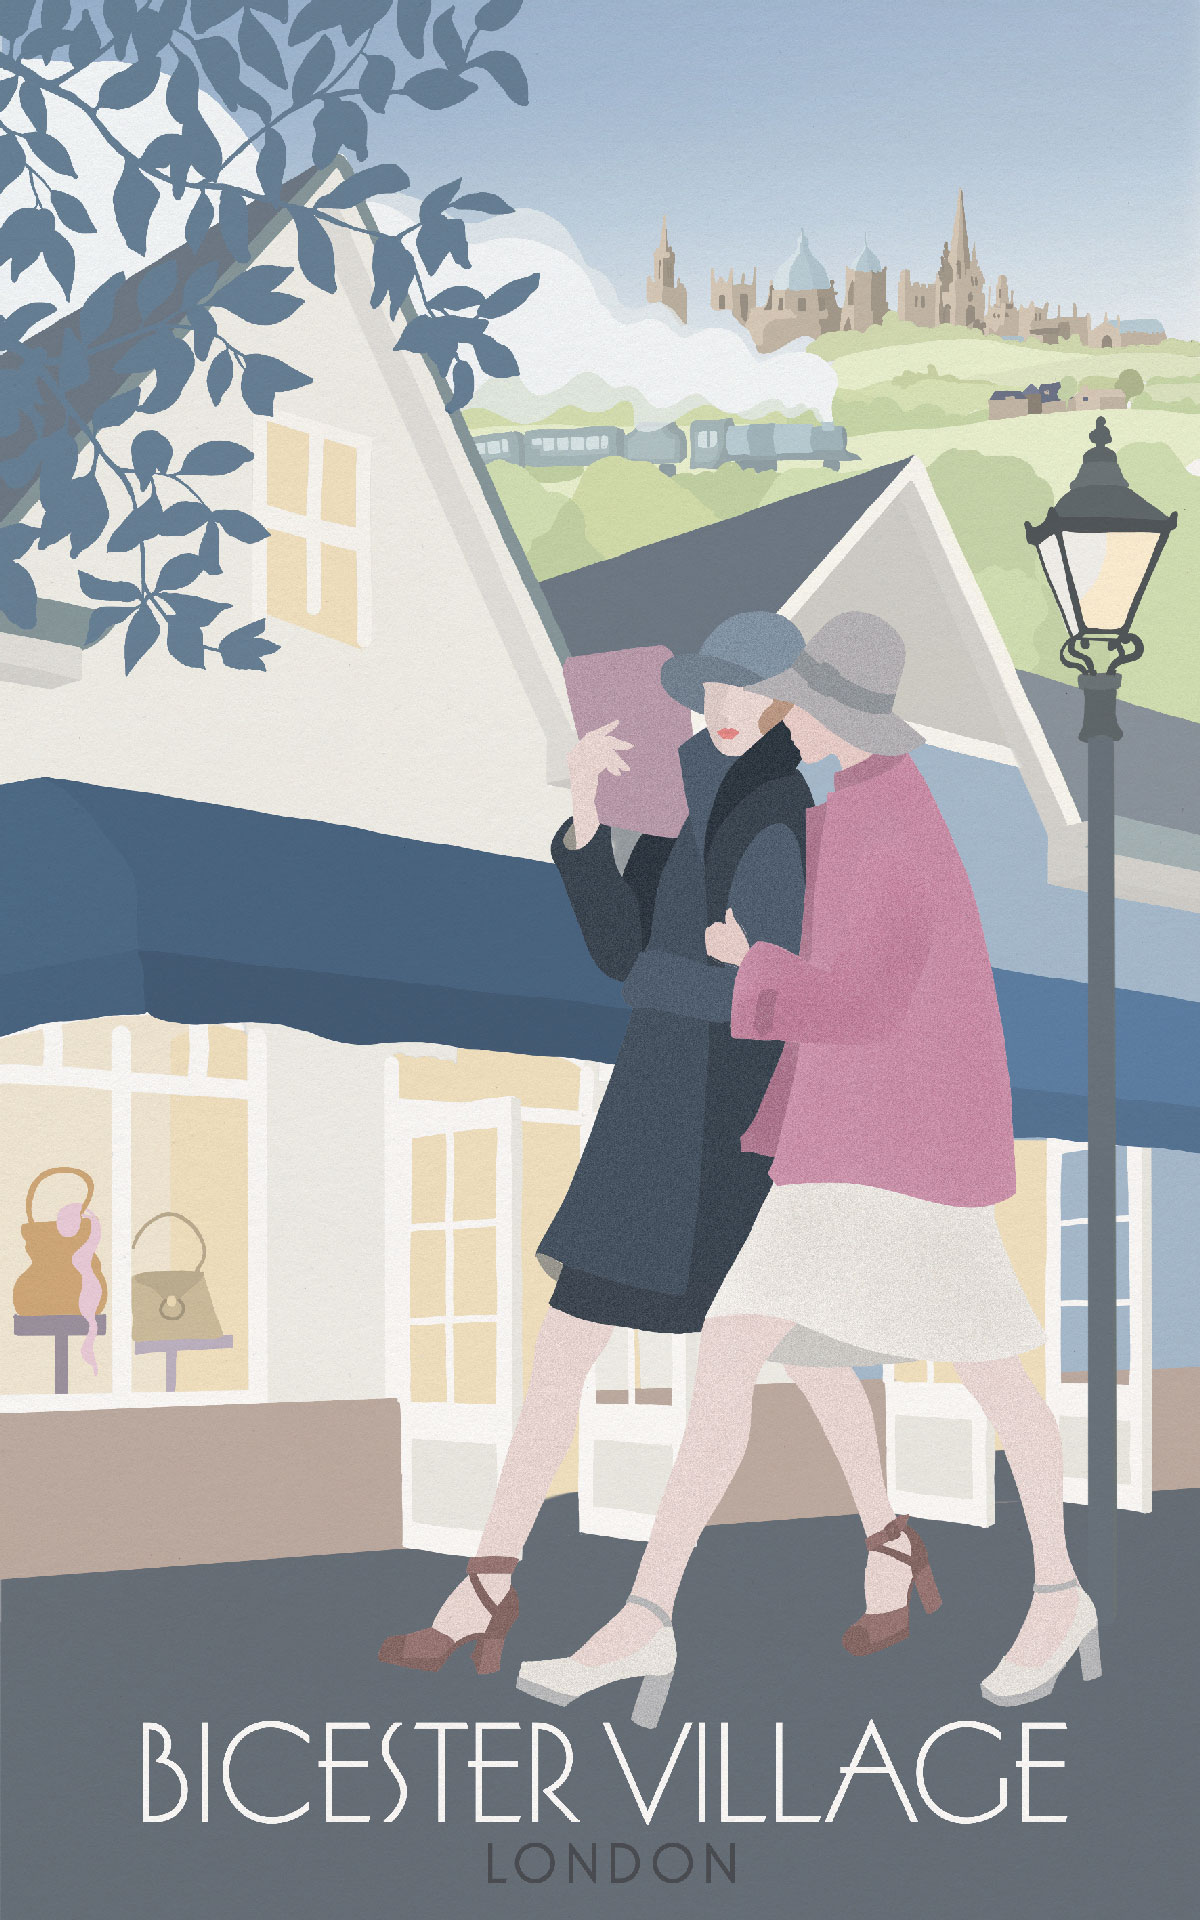 BICESTER VILLAGE TRAVEL POSTER - VALUE RETAIL - THE TRAVEL POSTERS